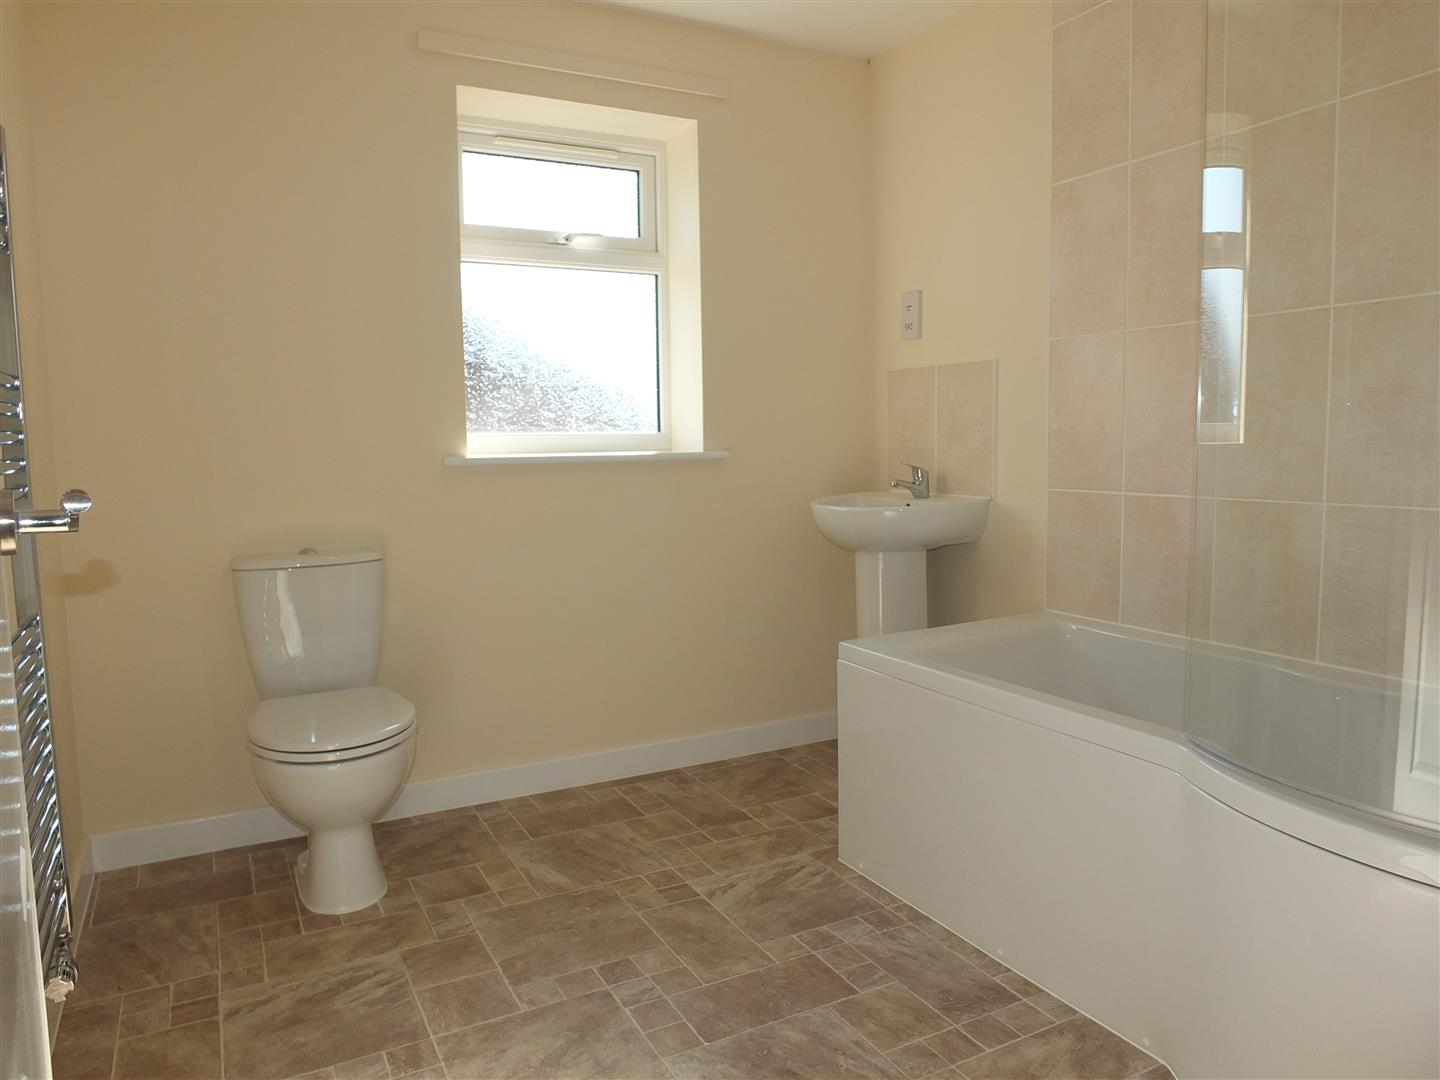 2 bed house to rent in Long Sutton Spalding, PE12 9LE 8